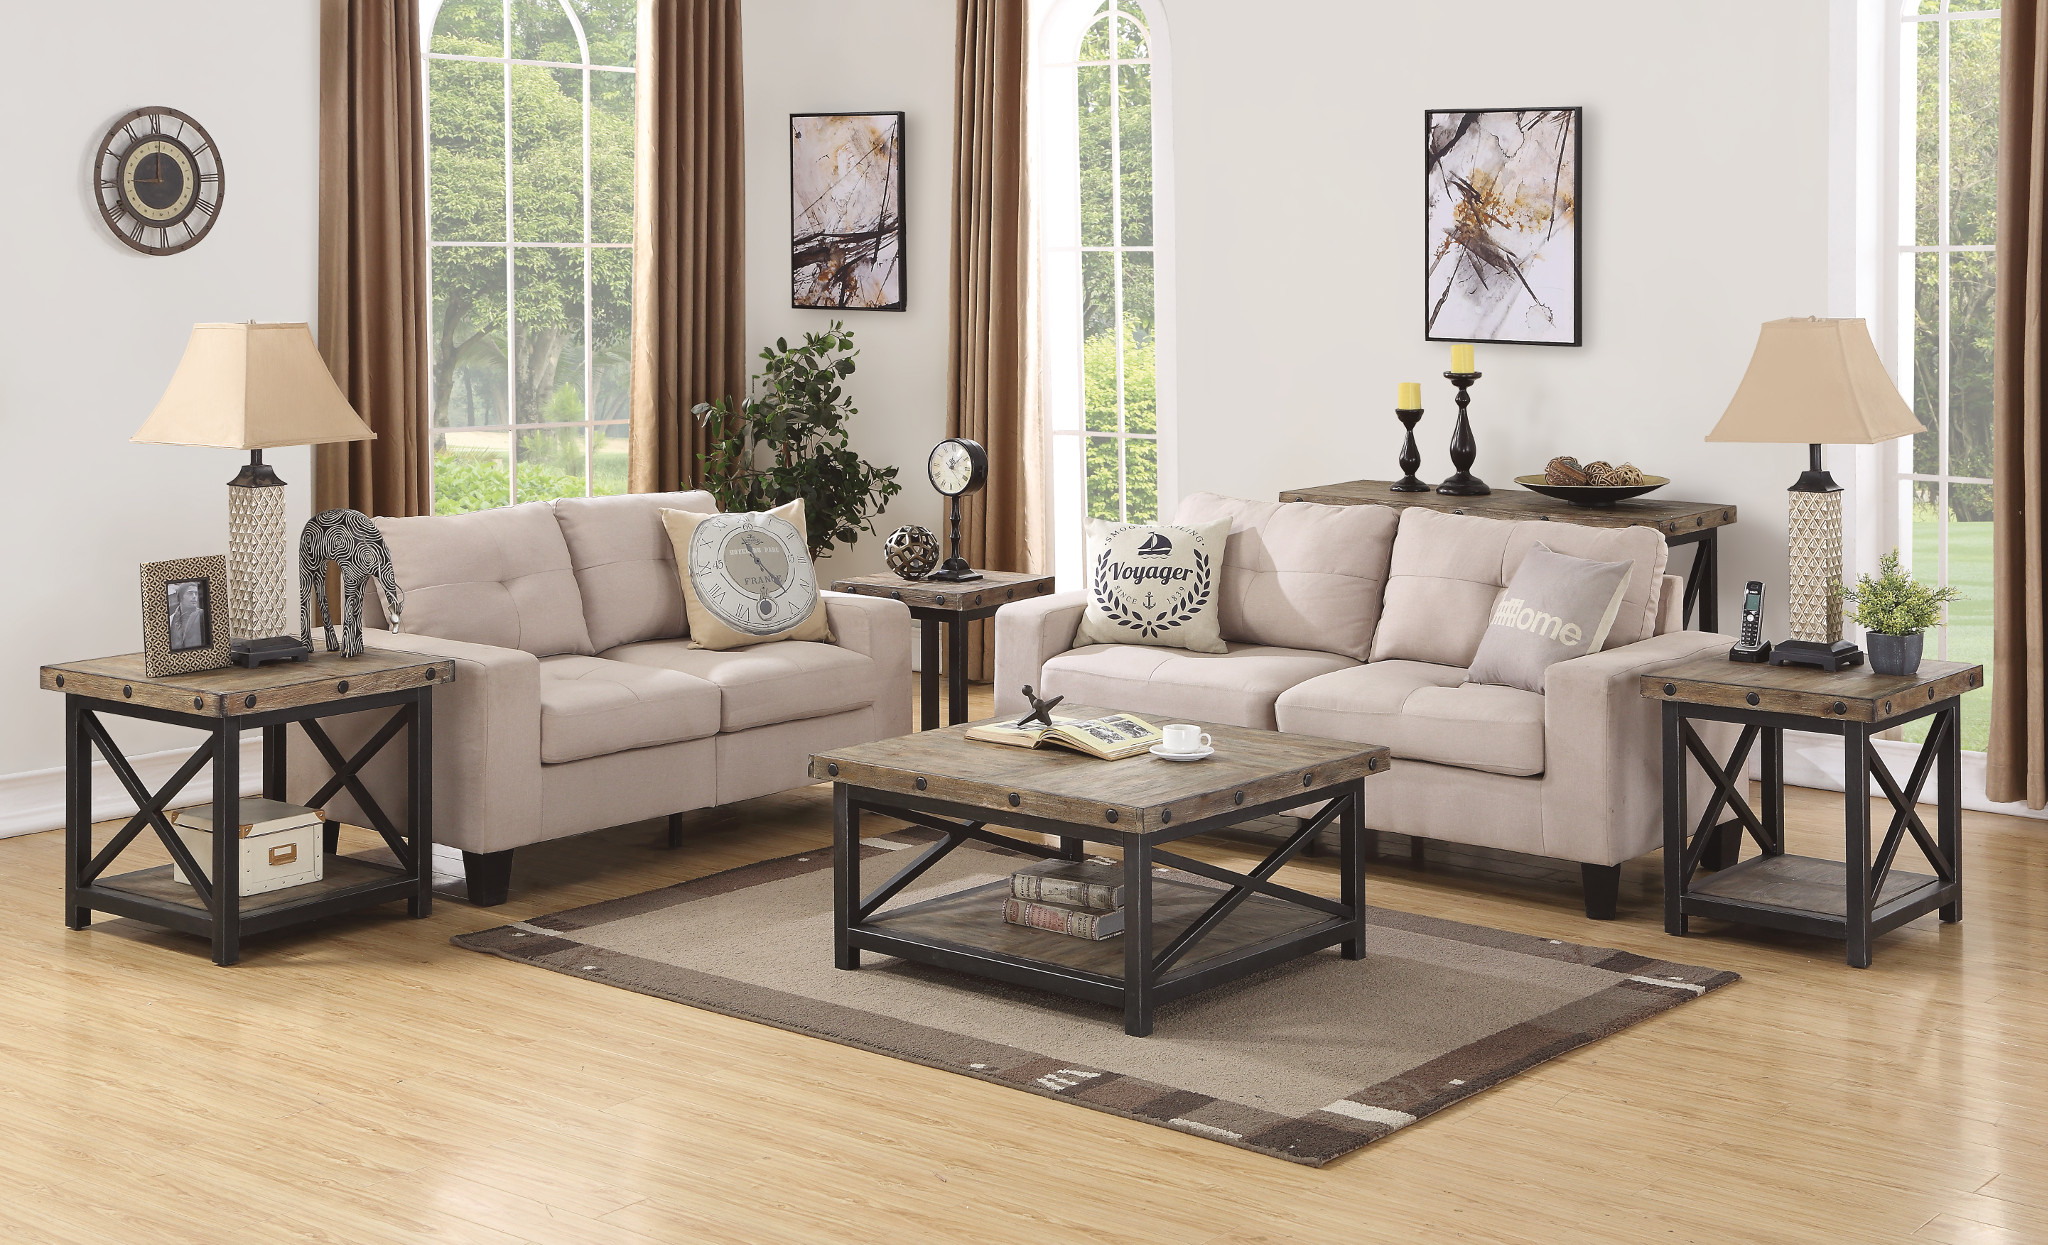 Occasional Furniture - The Perfect Complements